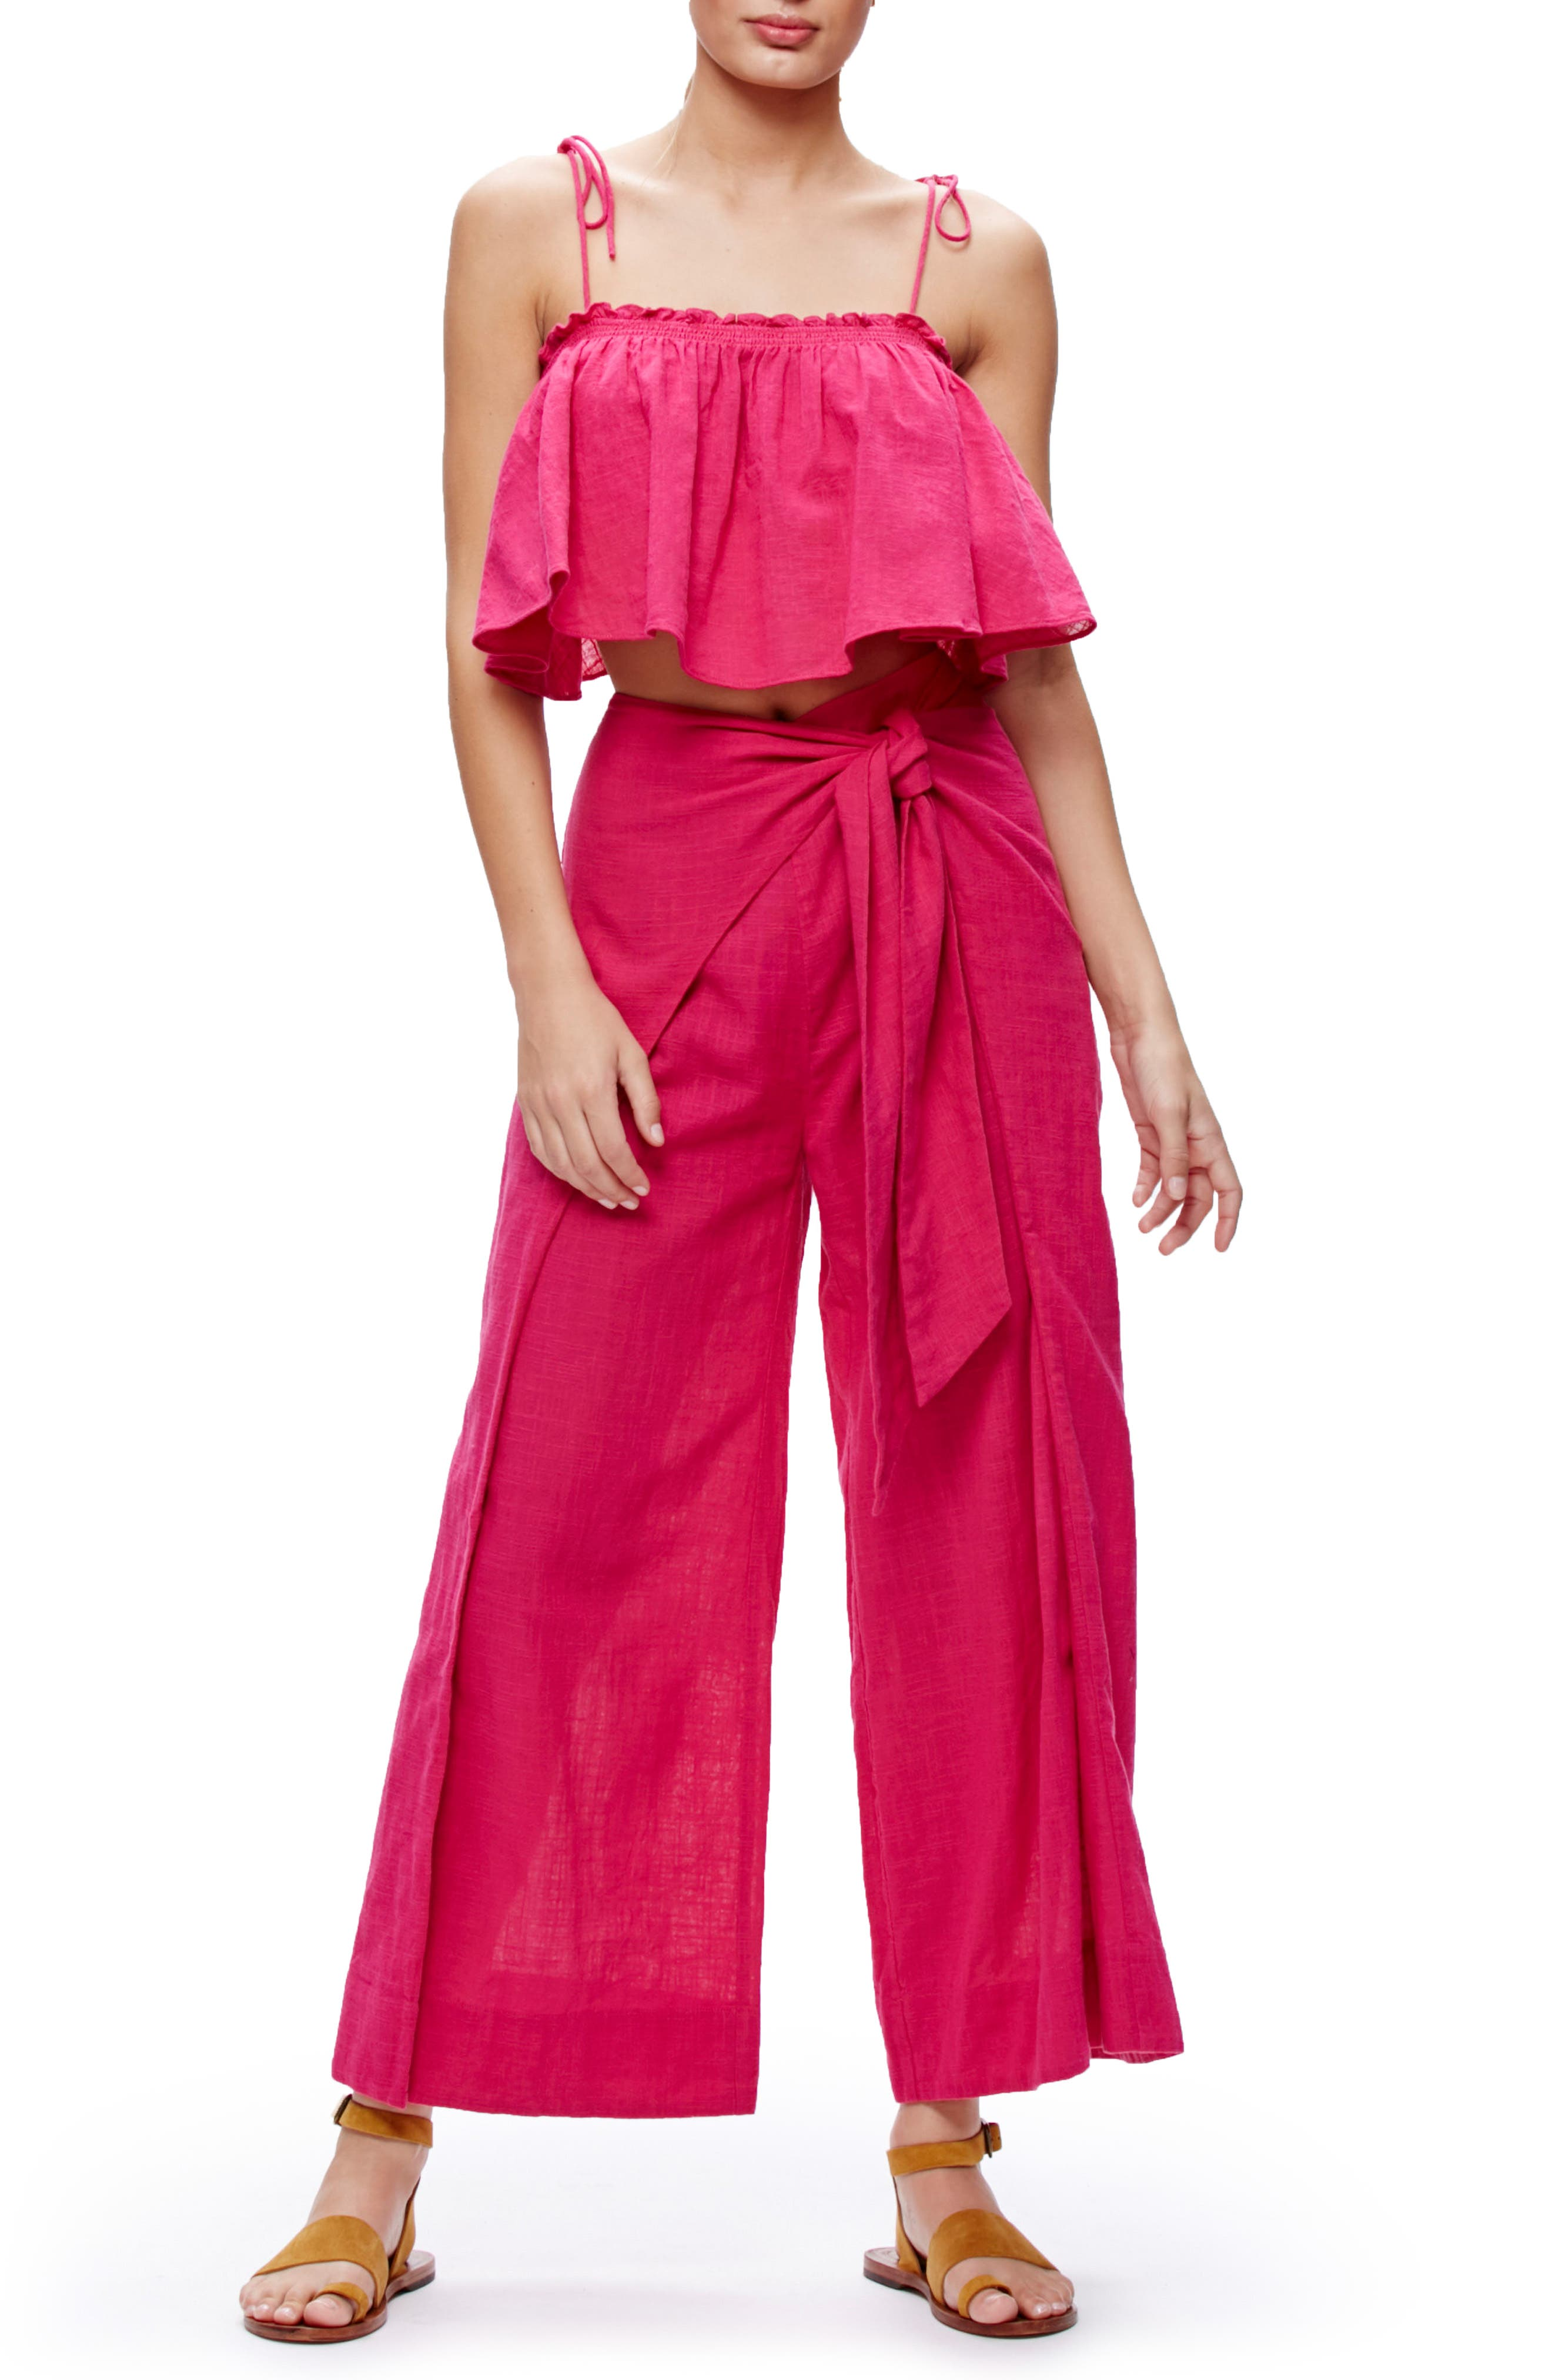 Alternate Image 1 Selected - Free People Tropic Babe Crop Top & High Waist Pants Set